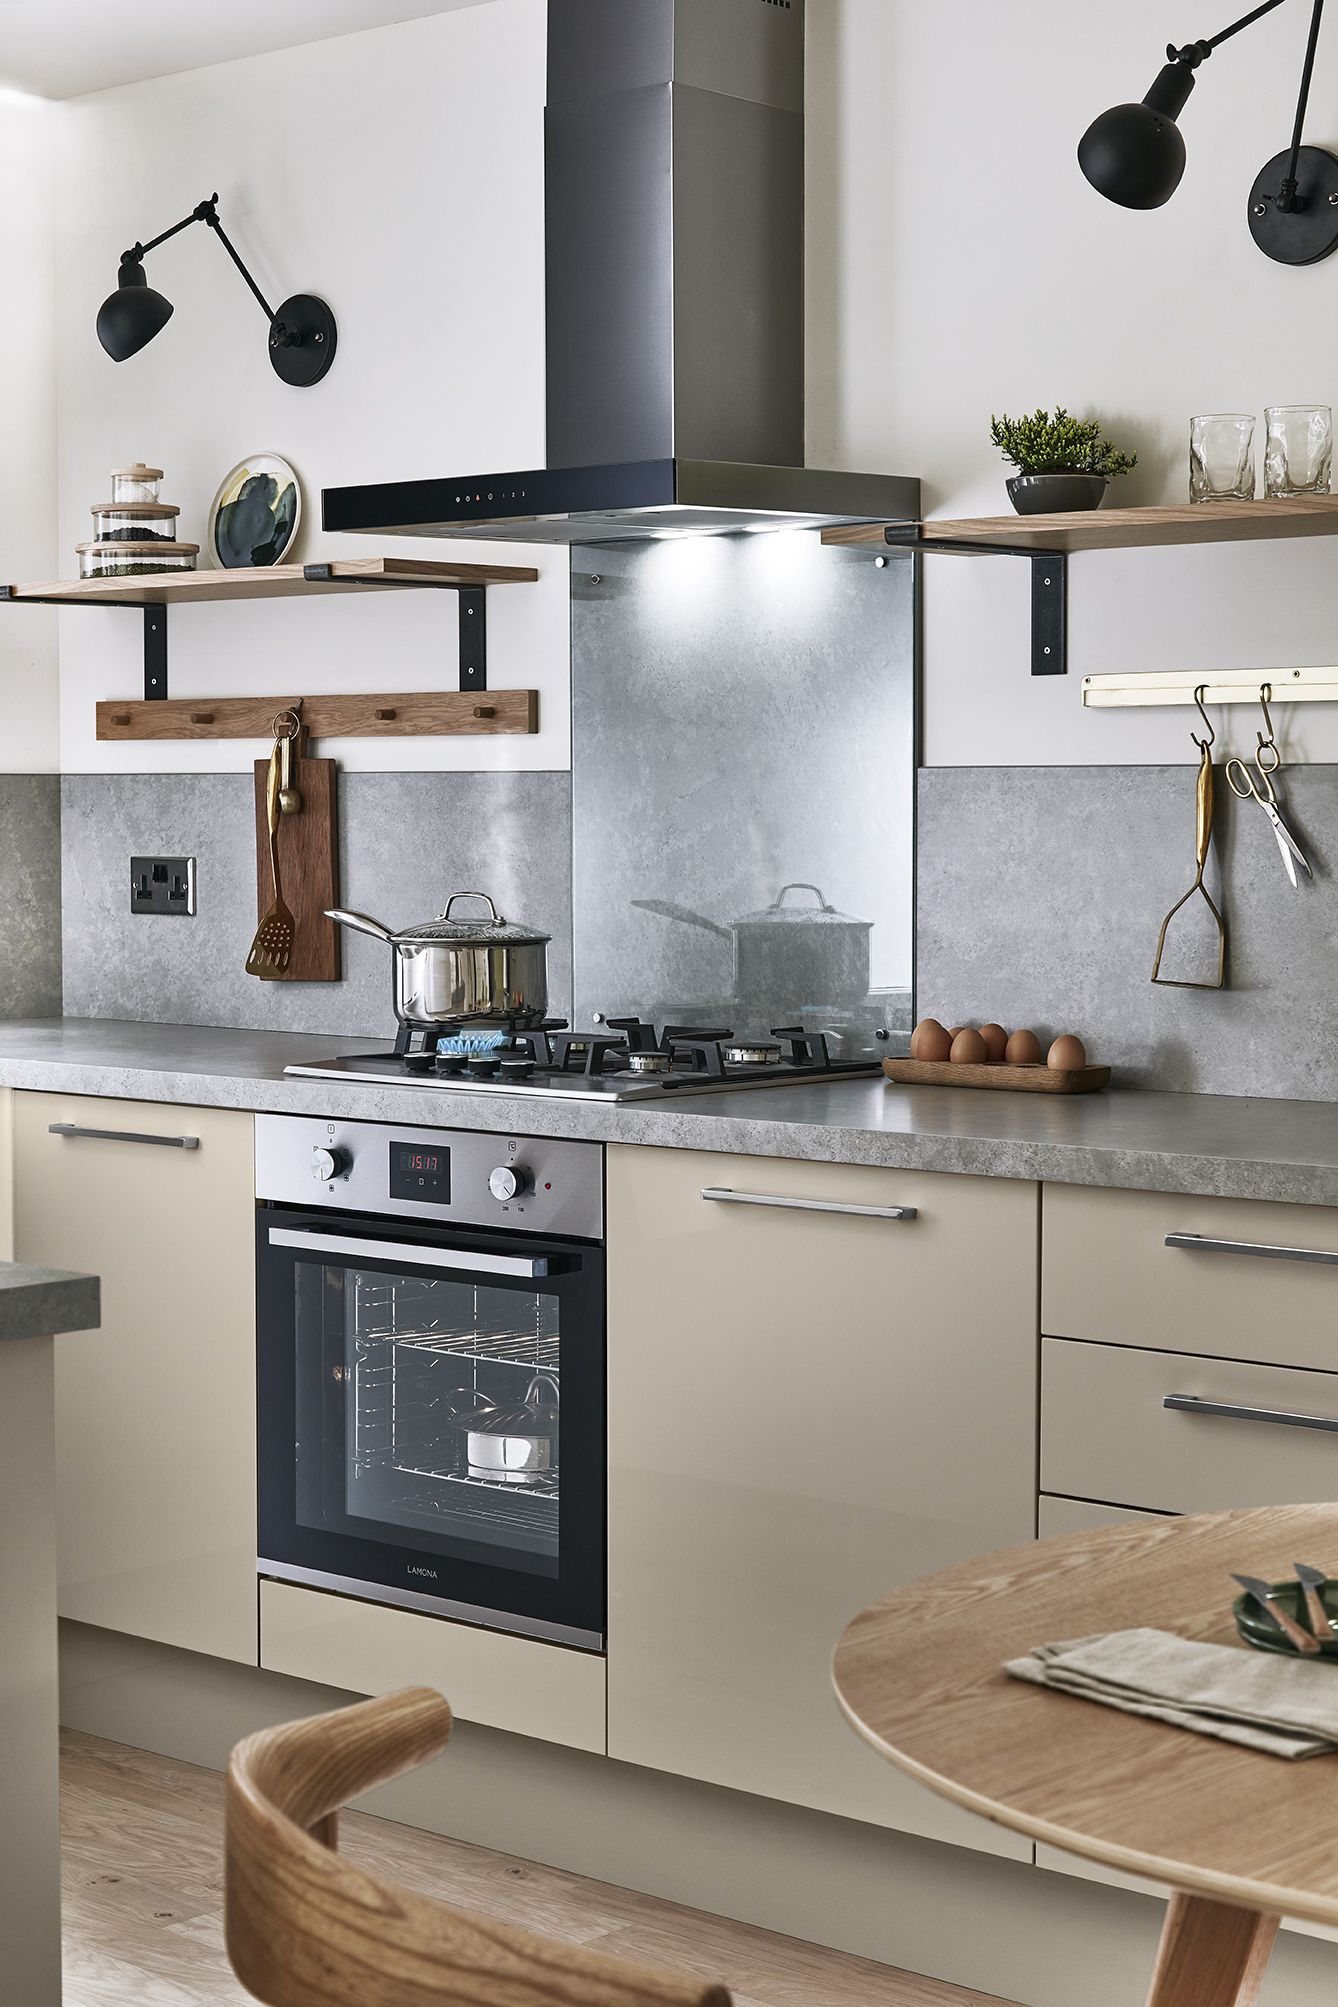 Küche Weiß Shabby Chic The Glendevon Gloss Cashmere Kitchen From Howdens The Soft